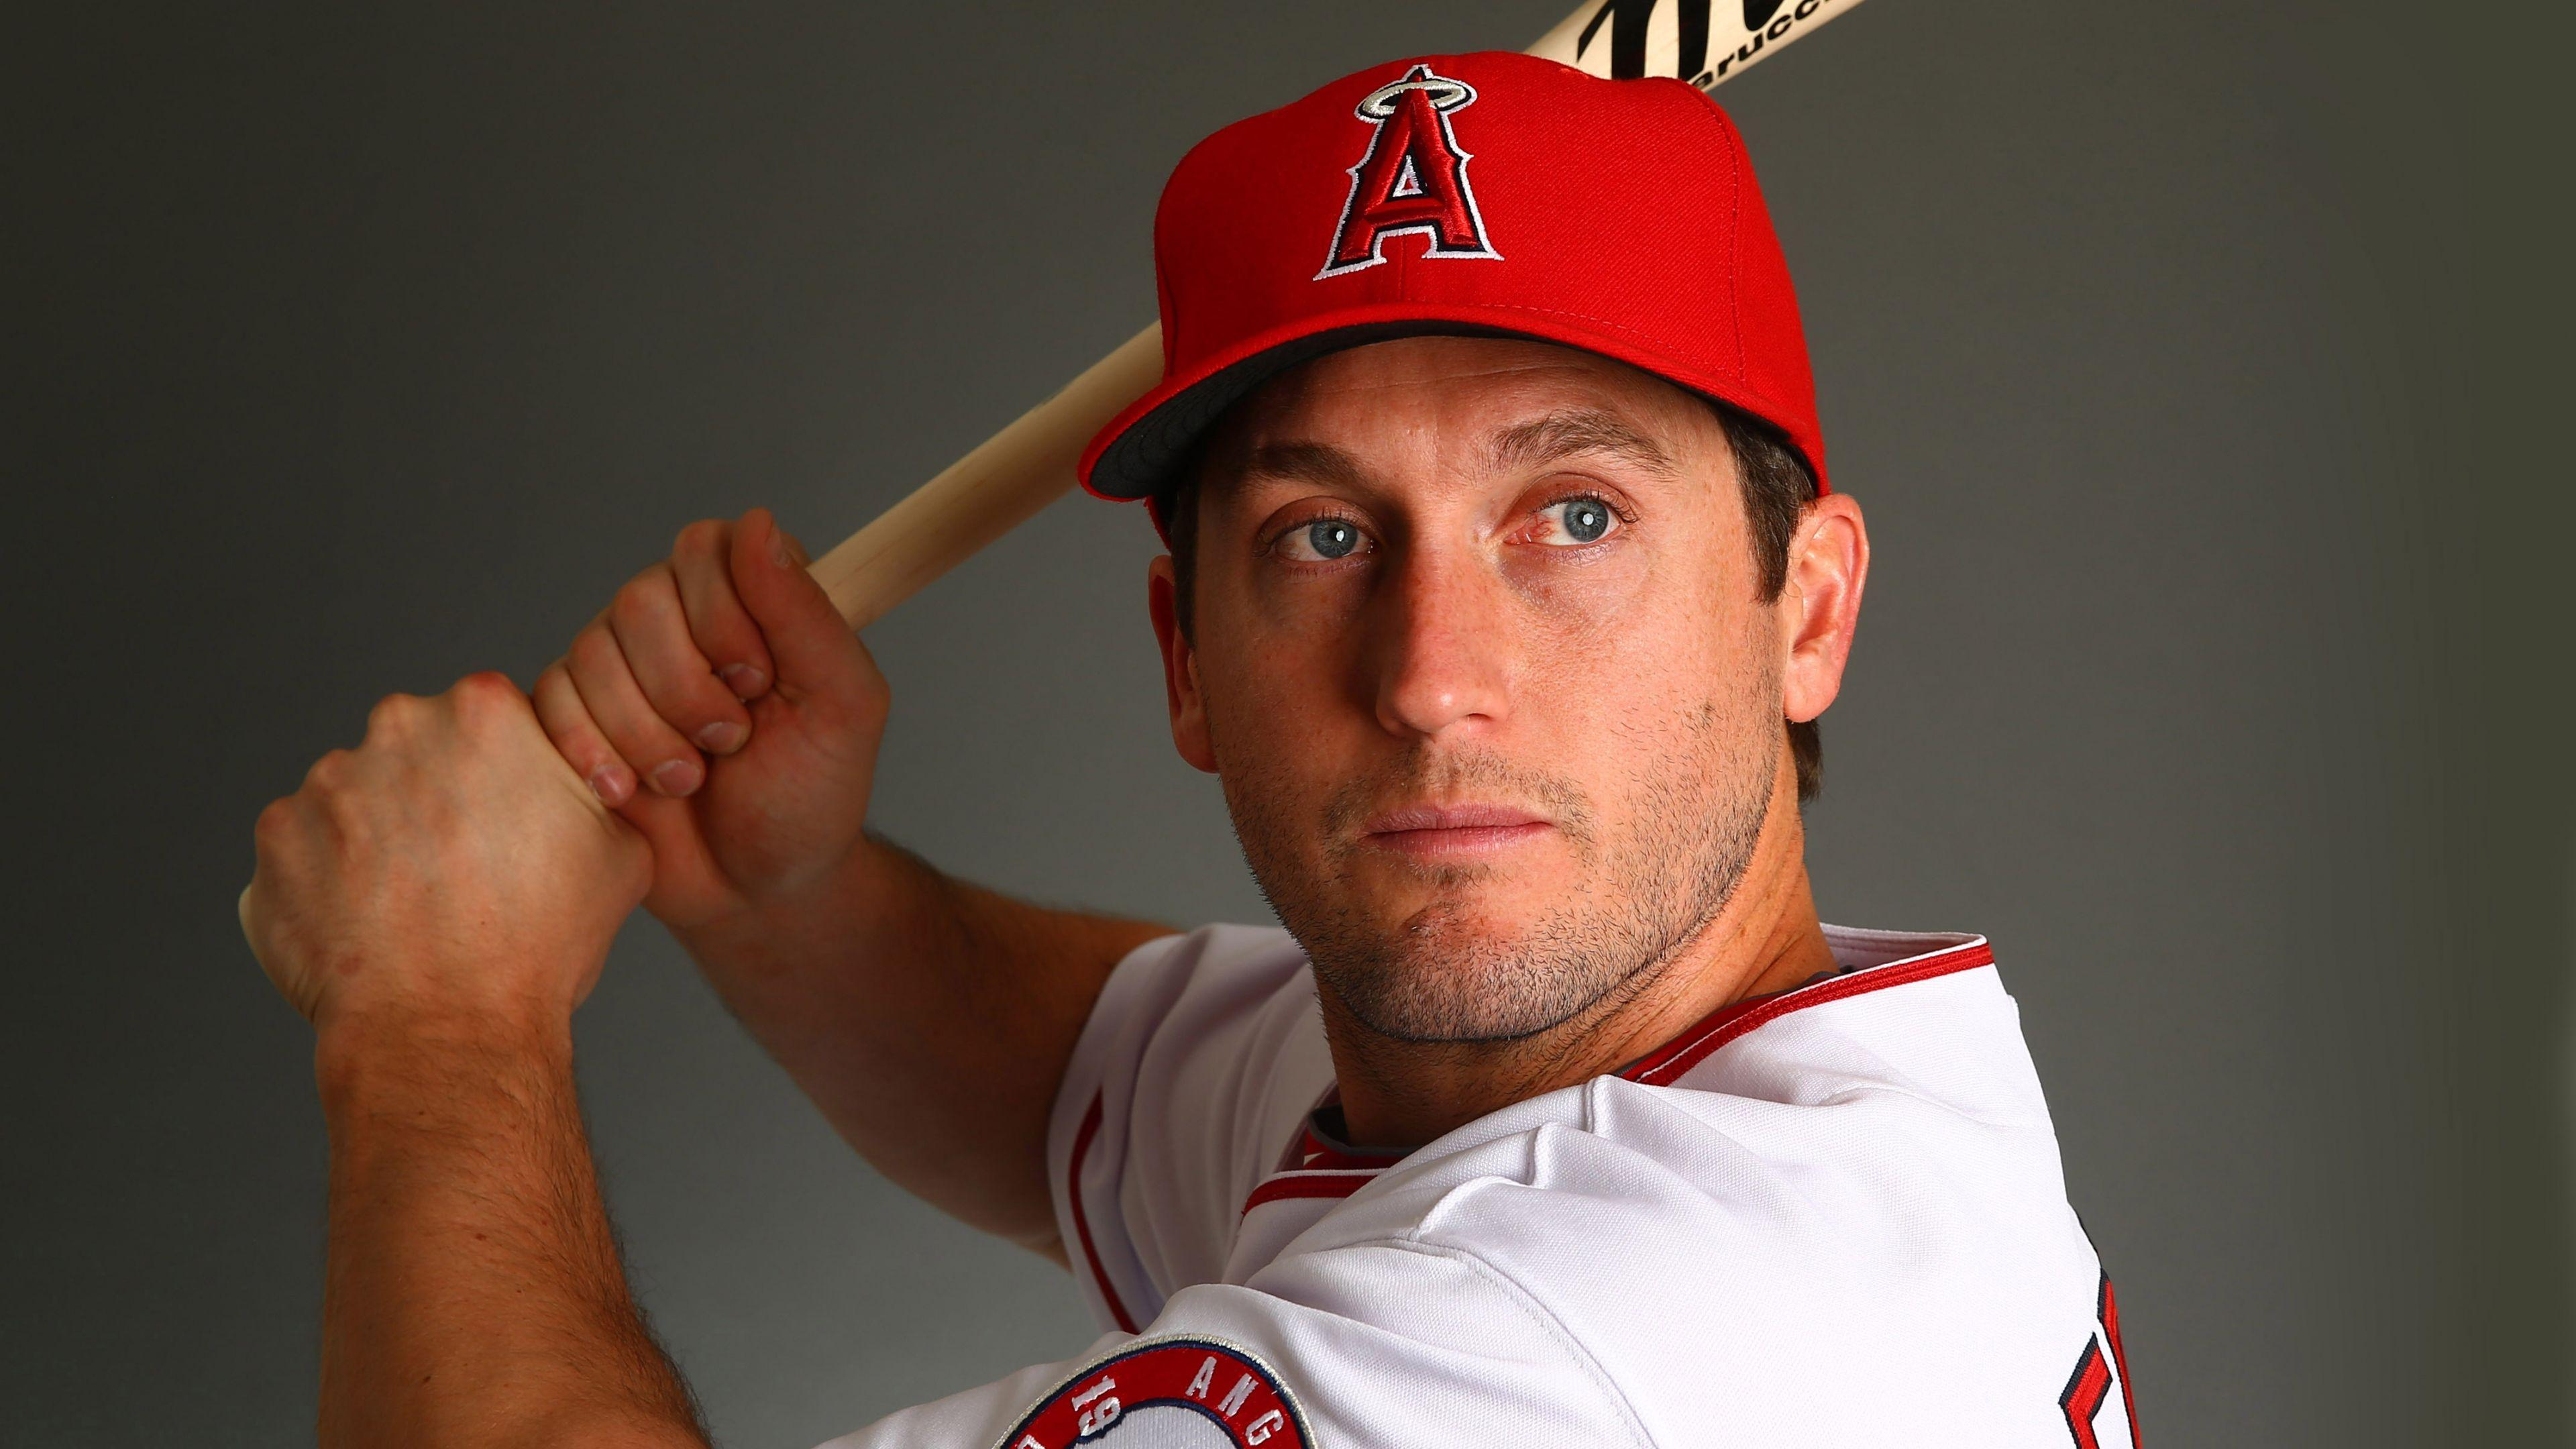 Download Wallpapers 3840x2160 David freese, Baseball, Los angeles